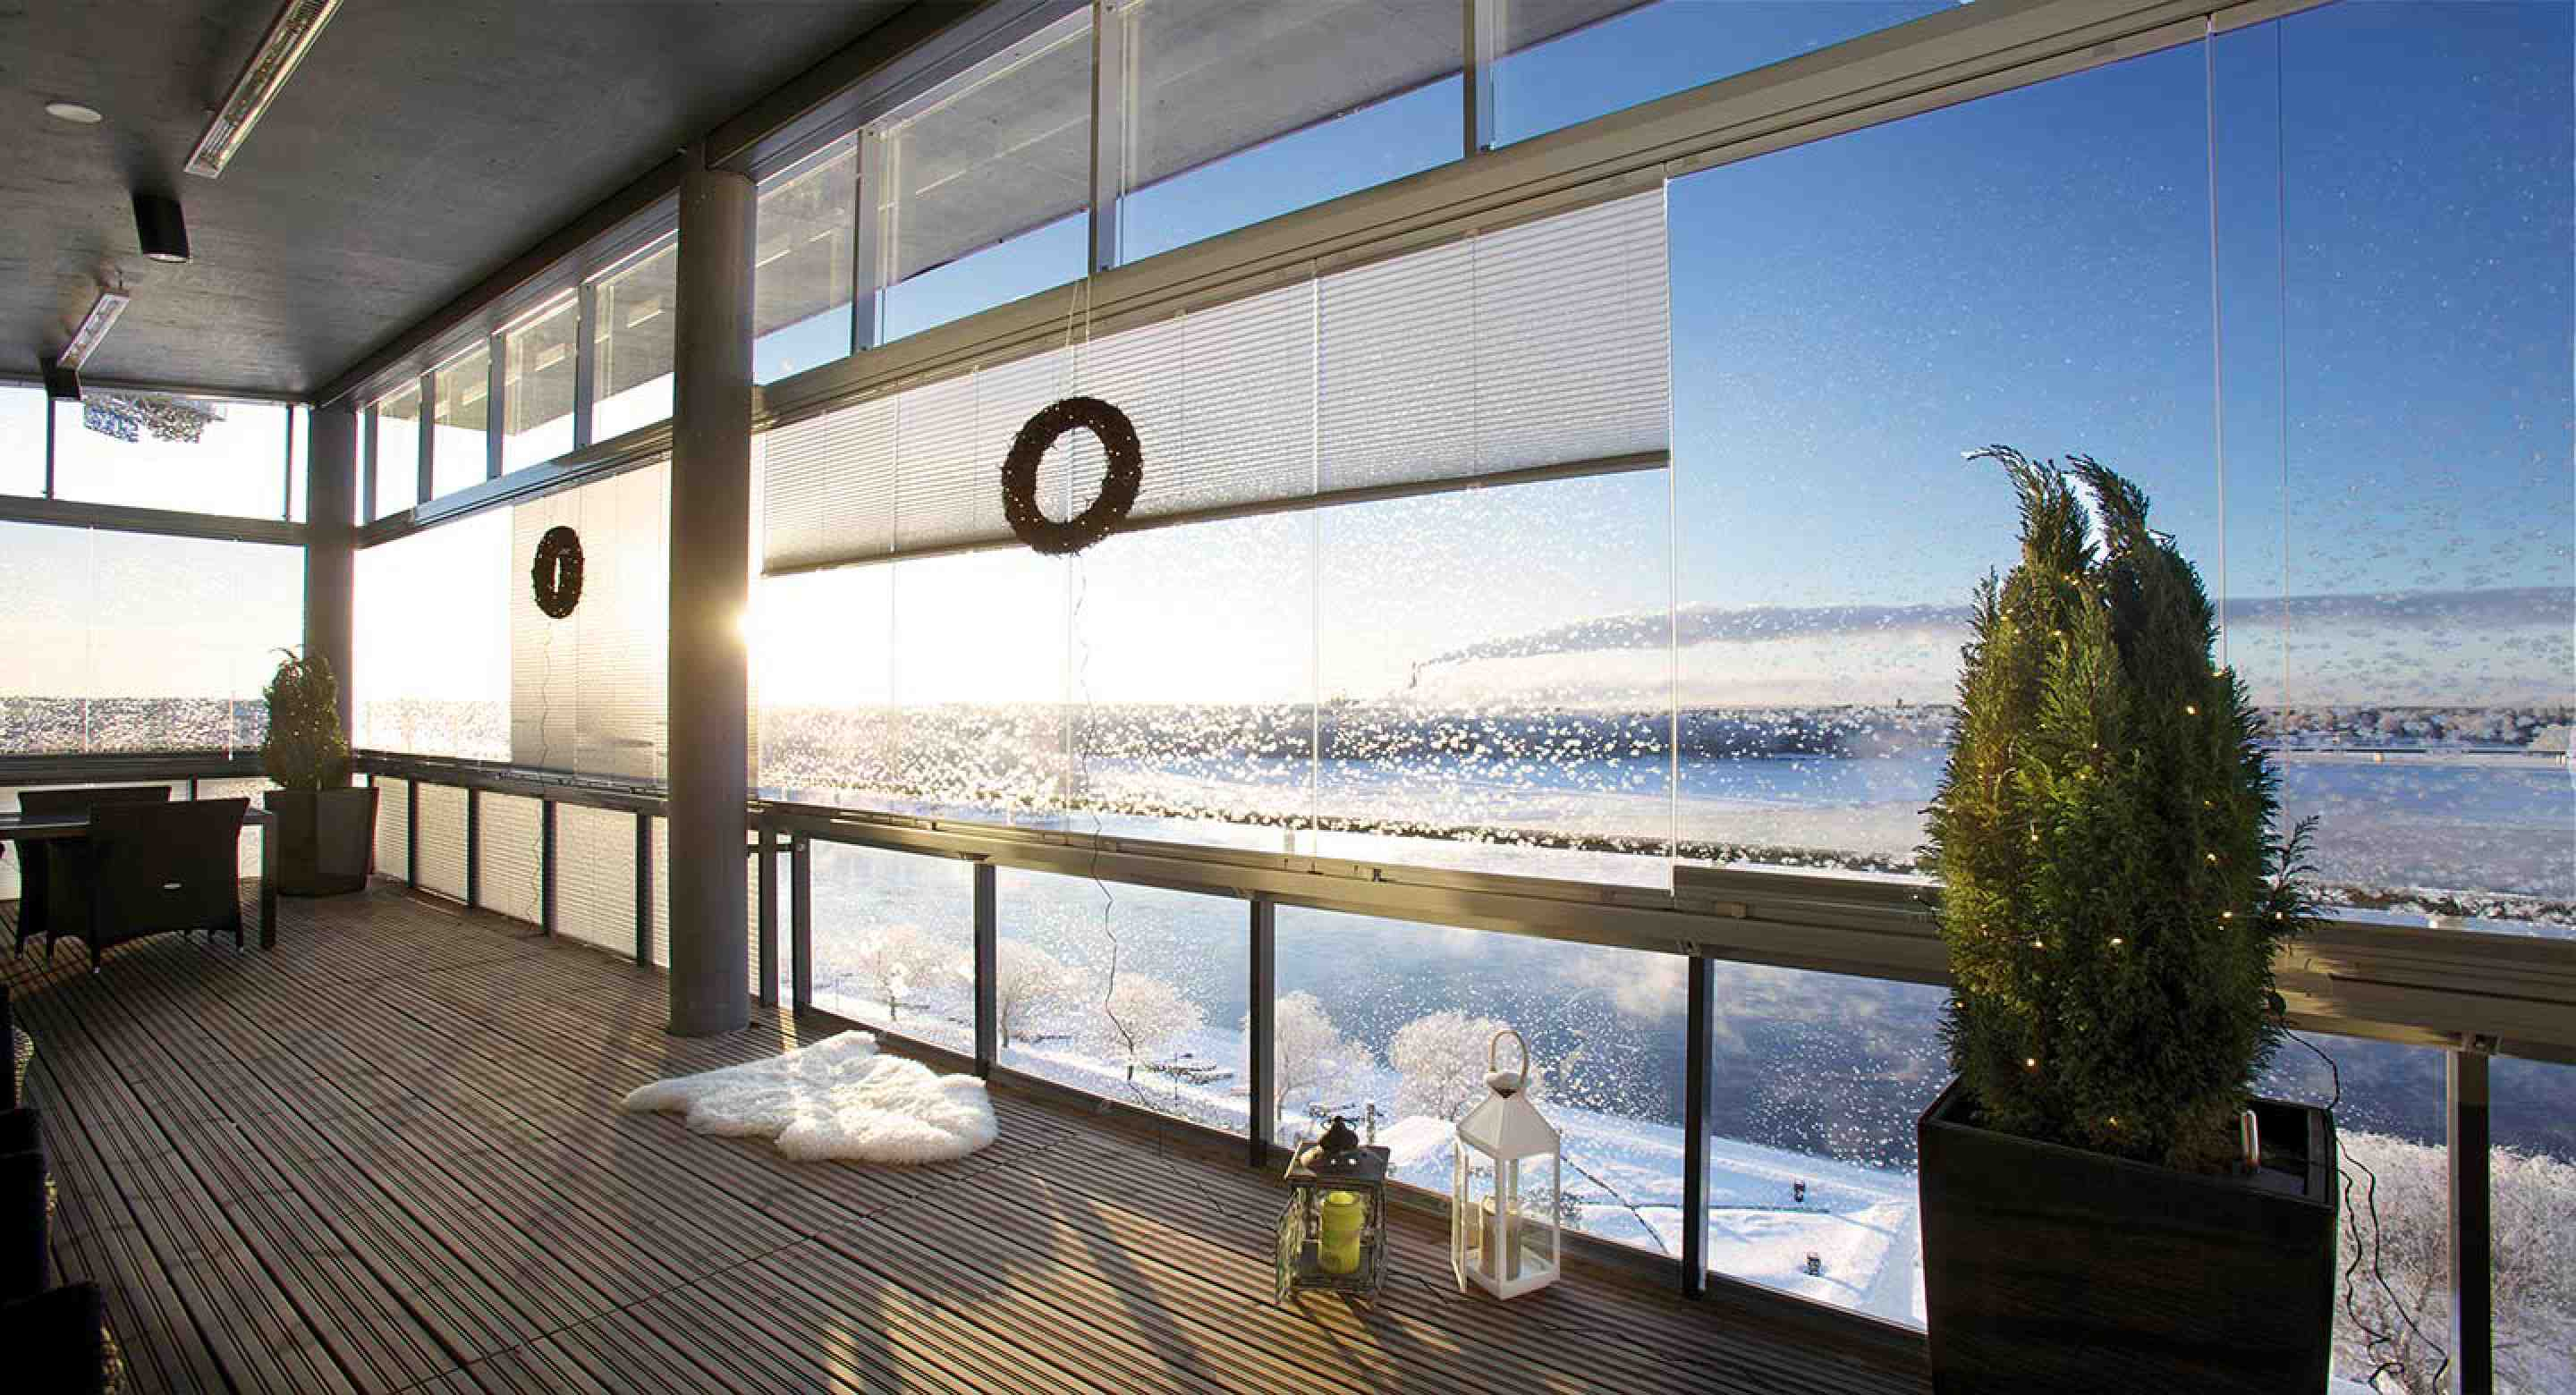 winter balcony enclosure, balcony, all season balcony condo, balcony glass walls, sliding glass walls, condo balcony, buffalo balcony enclosure, united states balcony laws, balcony enclosure company USA, balcony enclosures in new york